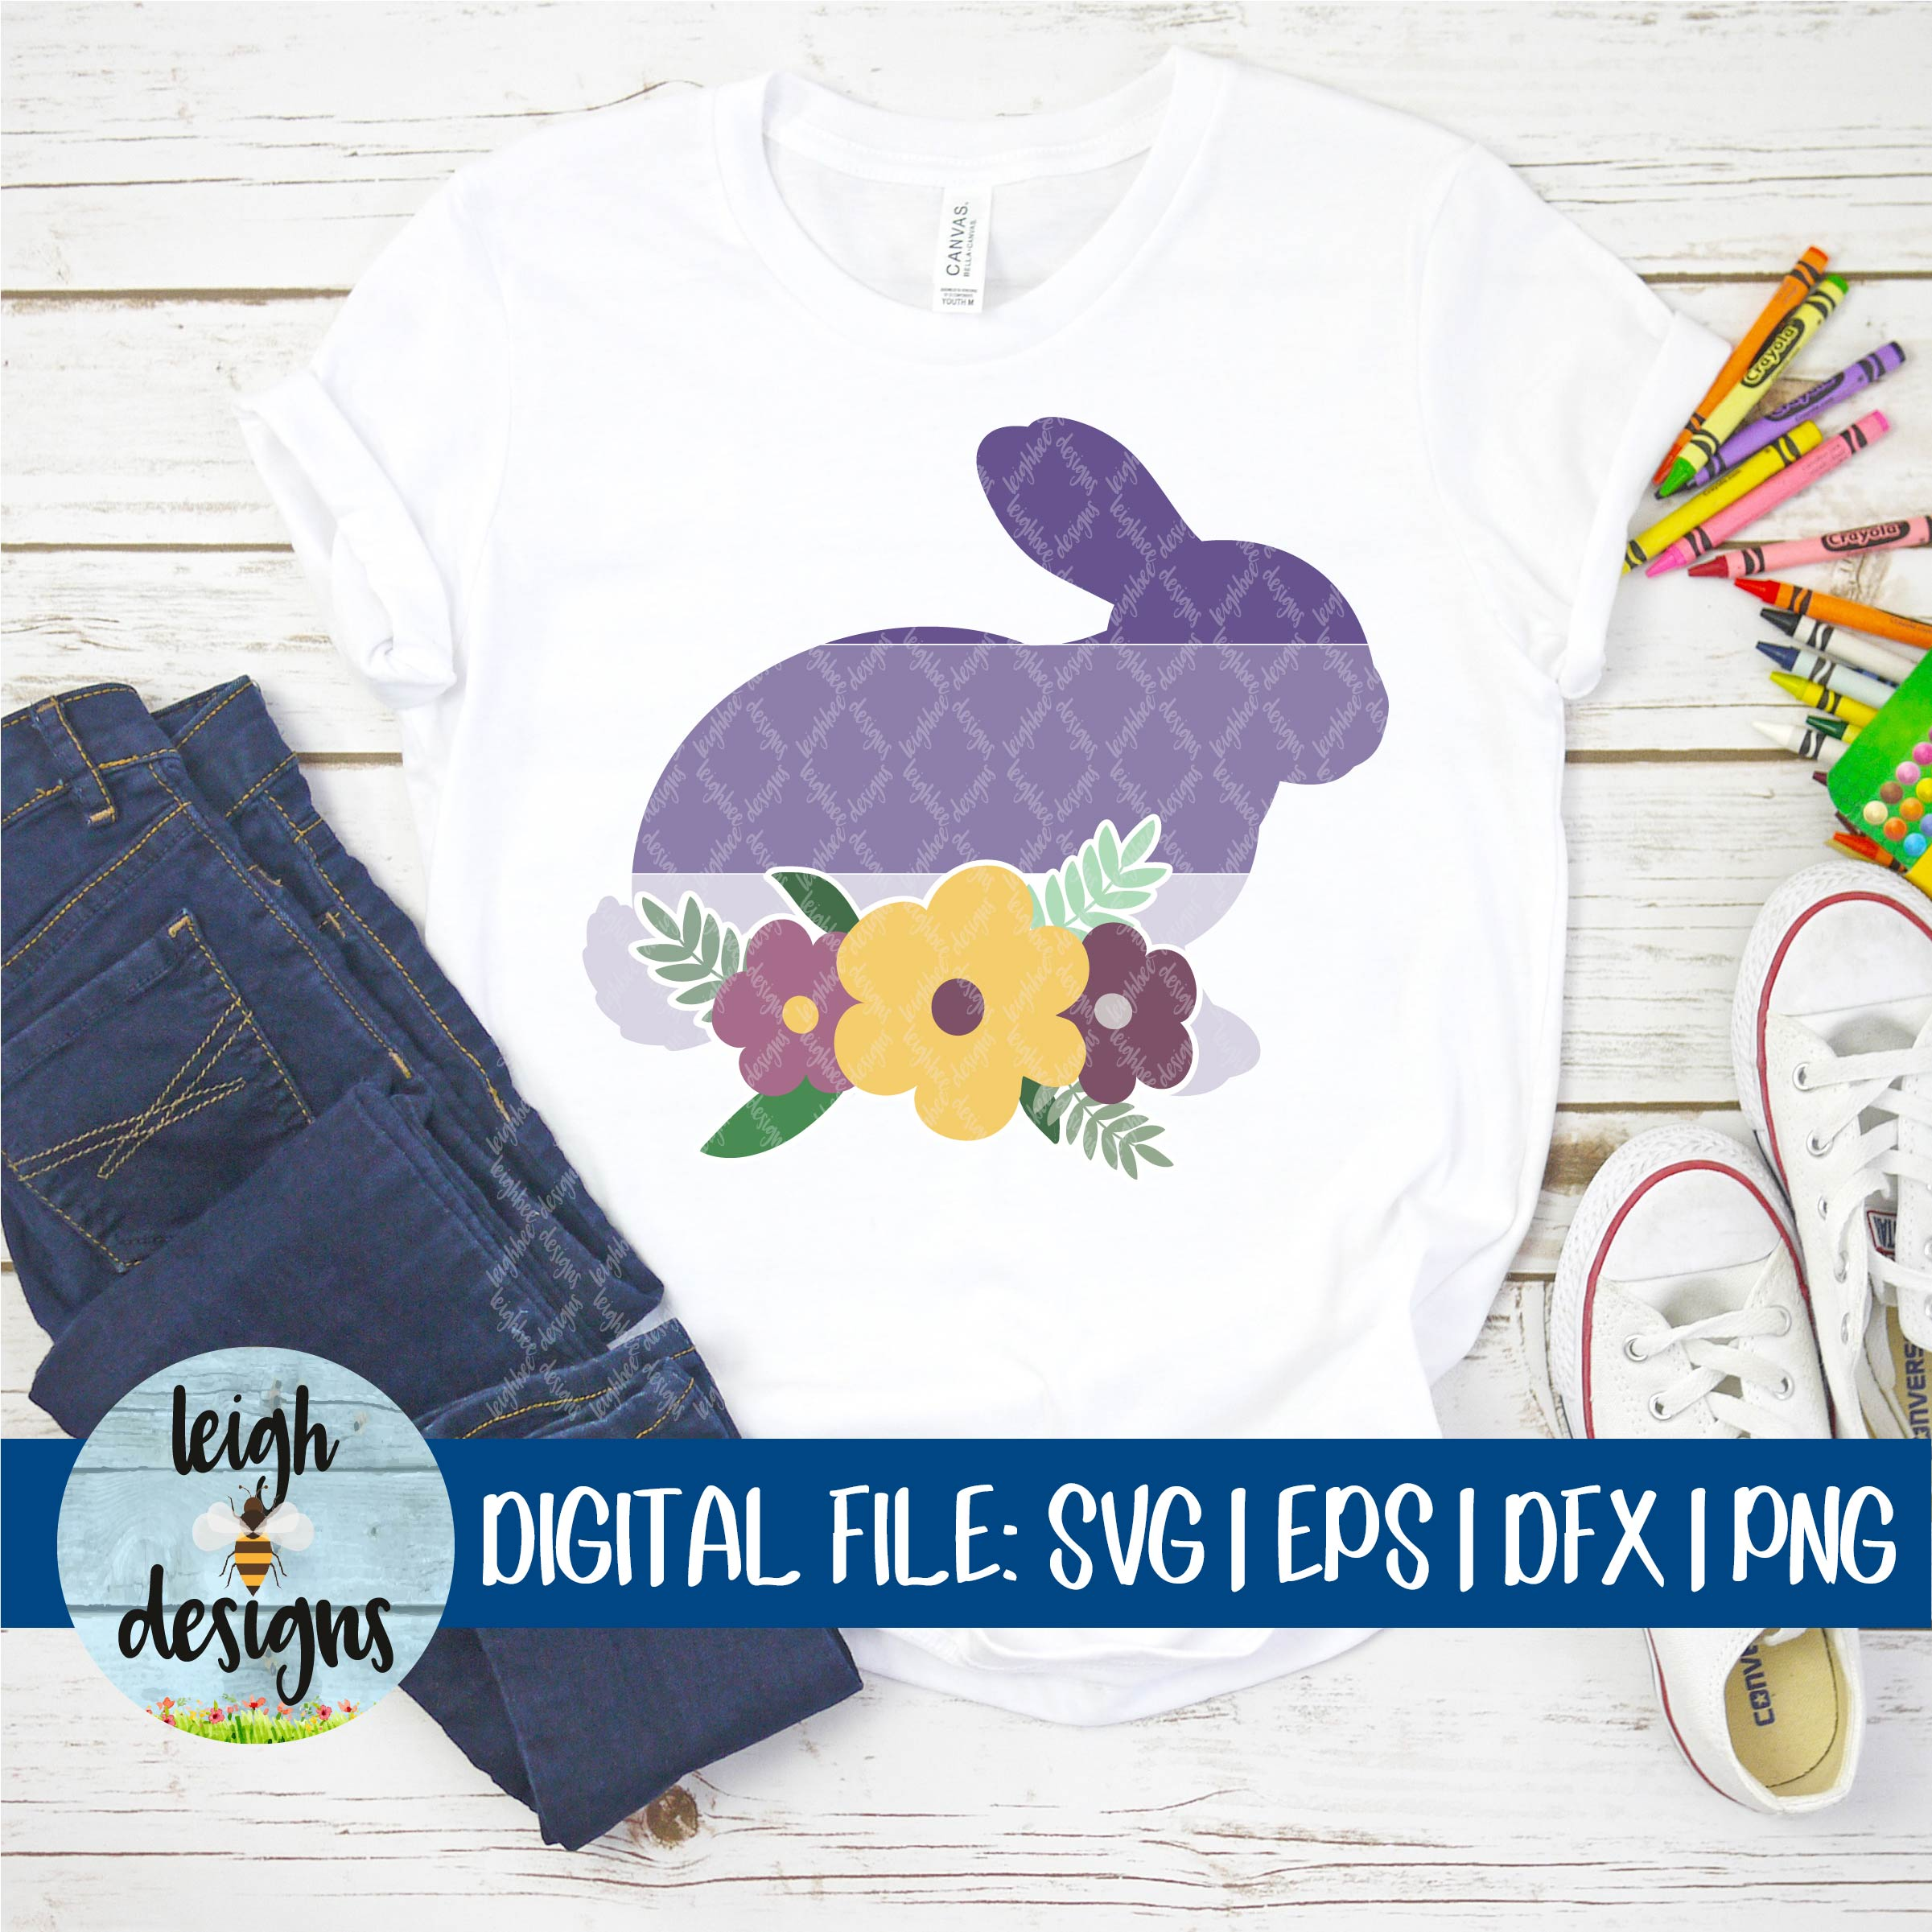 Ombre Bunny with Flower Swag SVG EPS DFX PNG Cut File example image 7